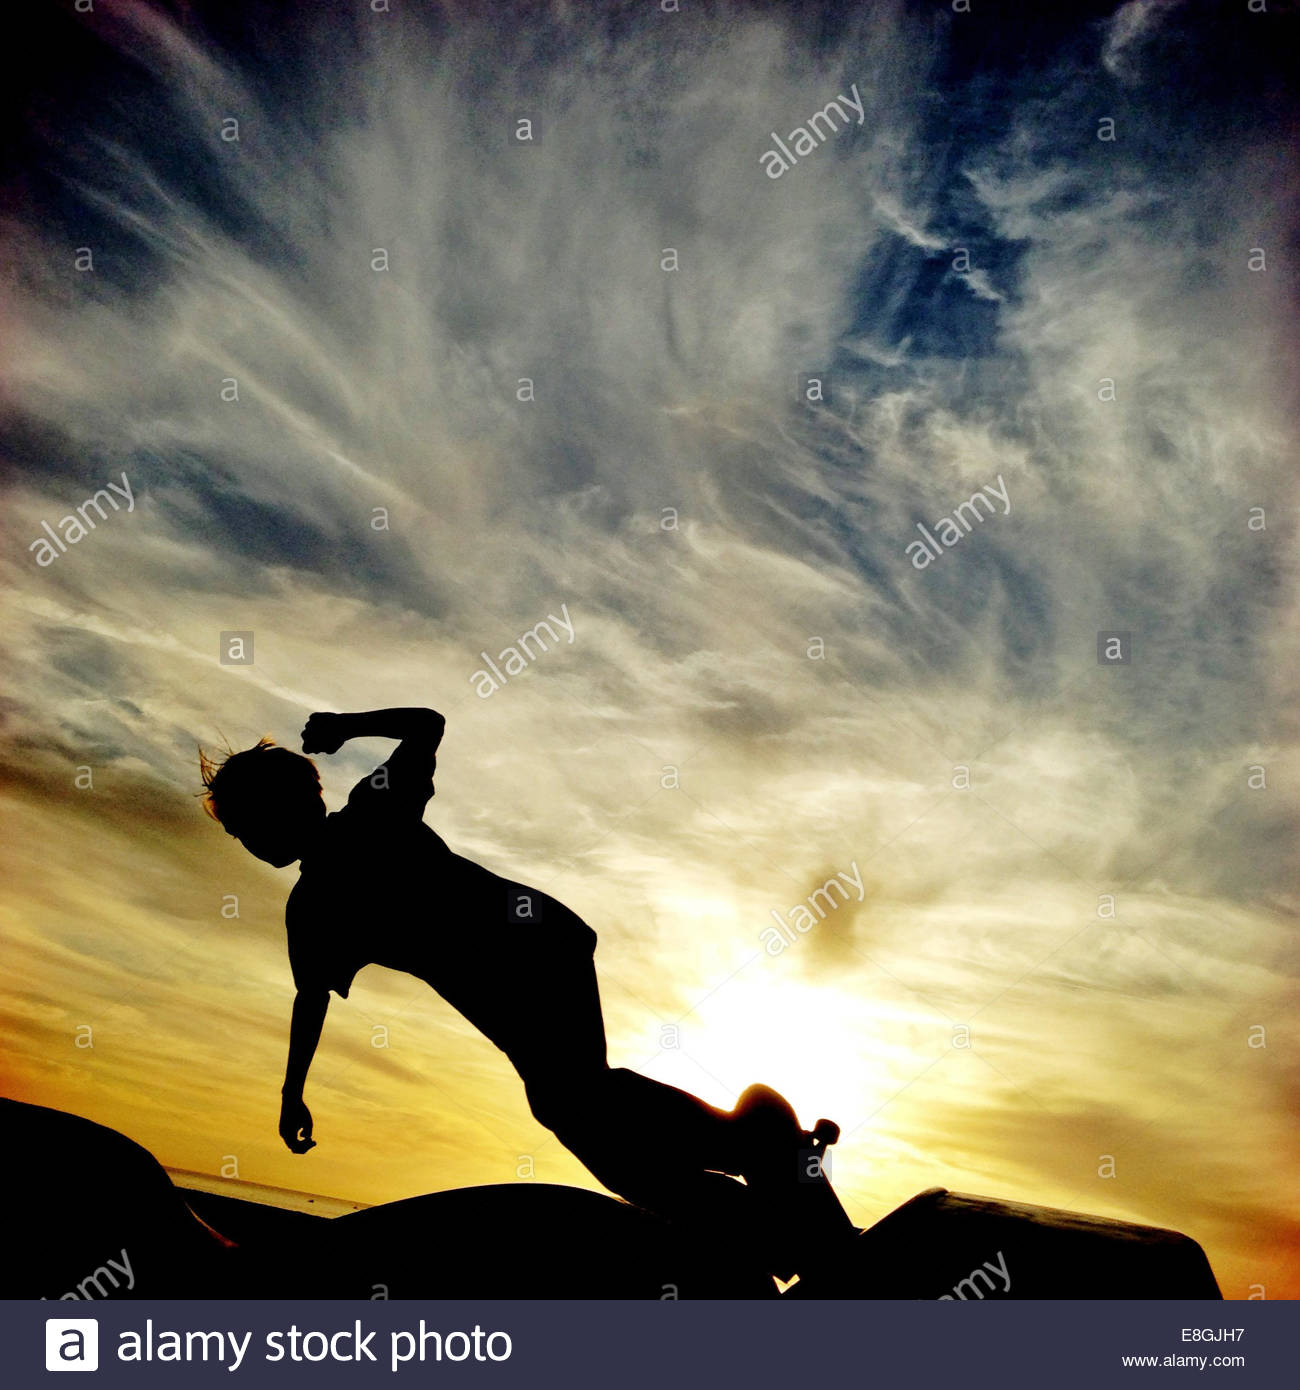 Silhouette of a boy skateboarding - Stock Image